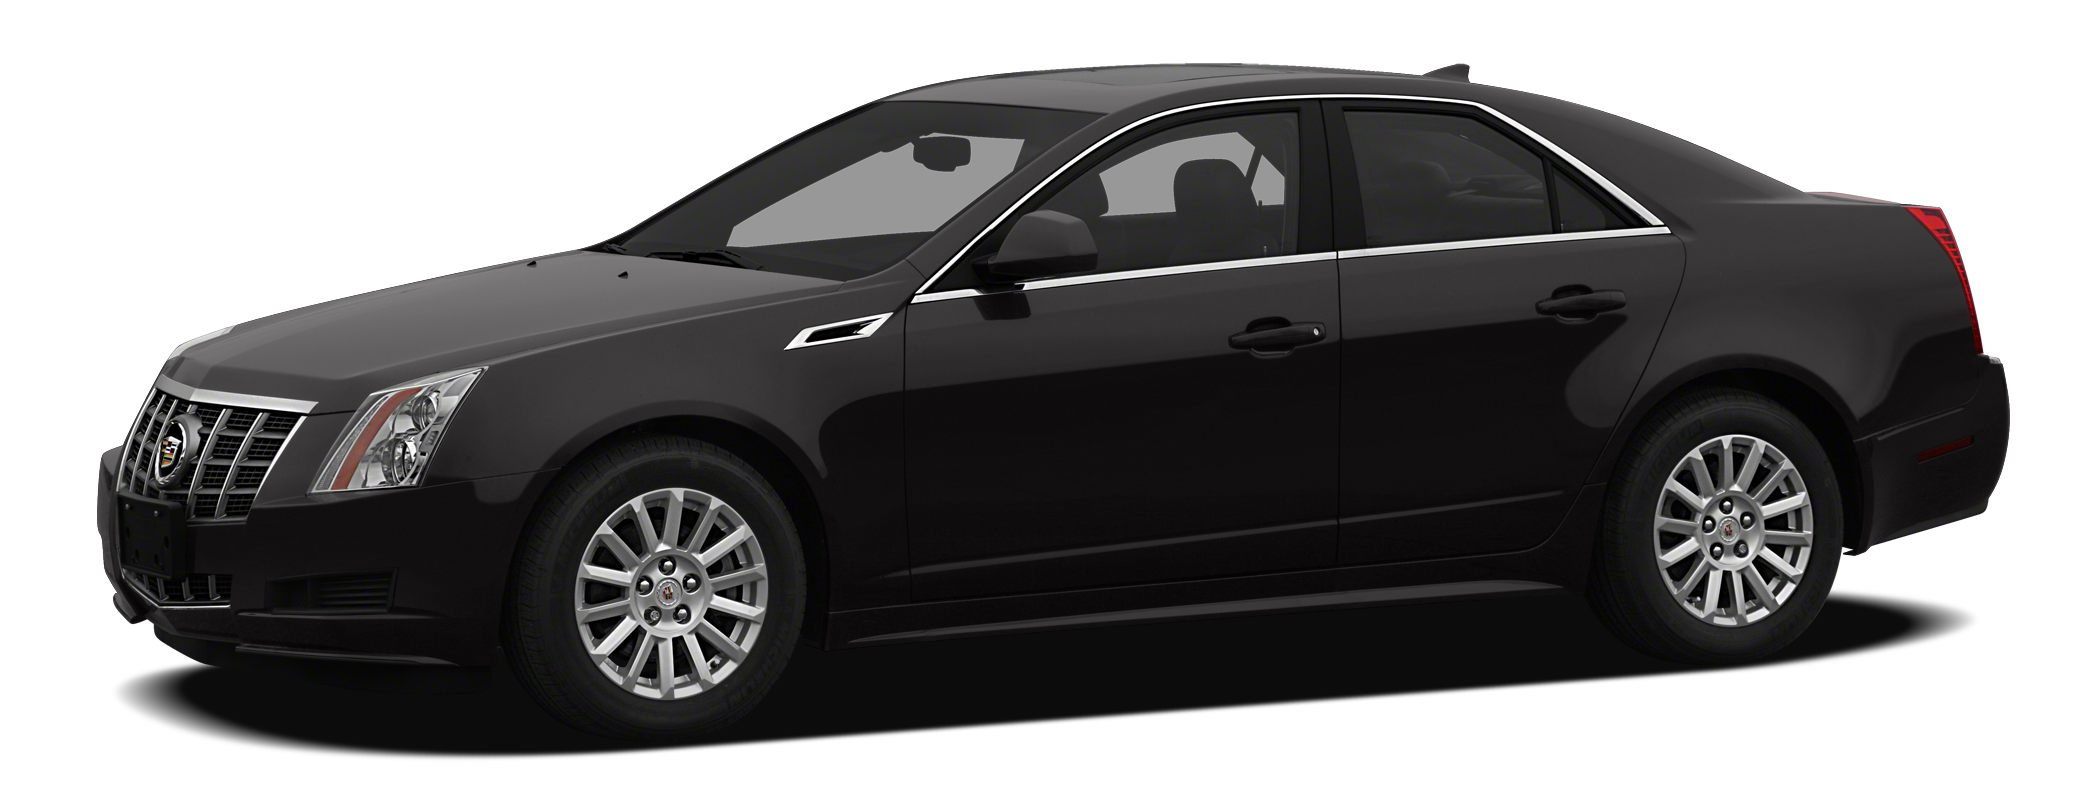 2012 Cadillac CTS Luxury DISCLAIMER We are excited to offer this vehicle to you but it is current